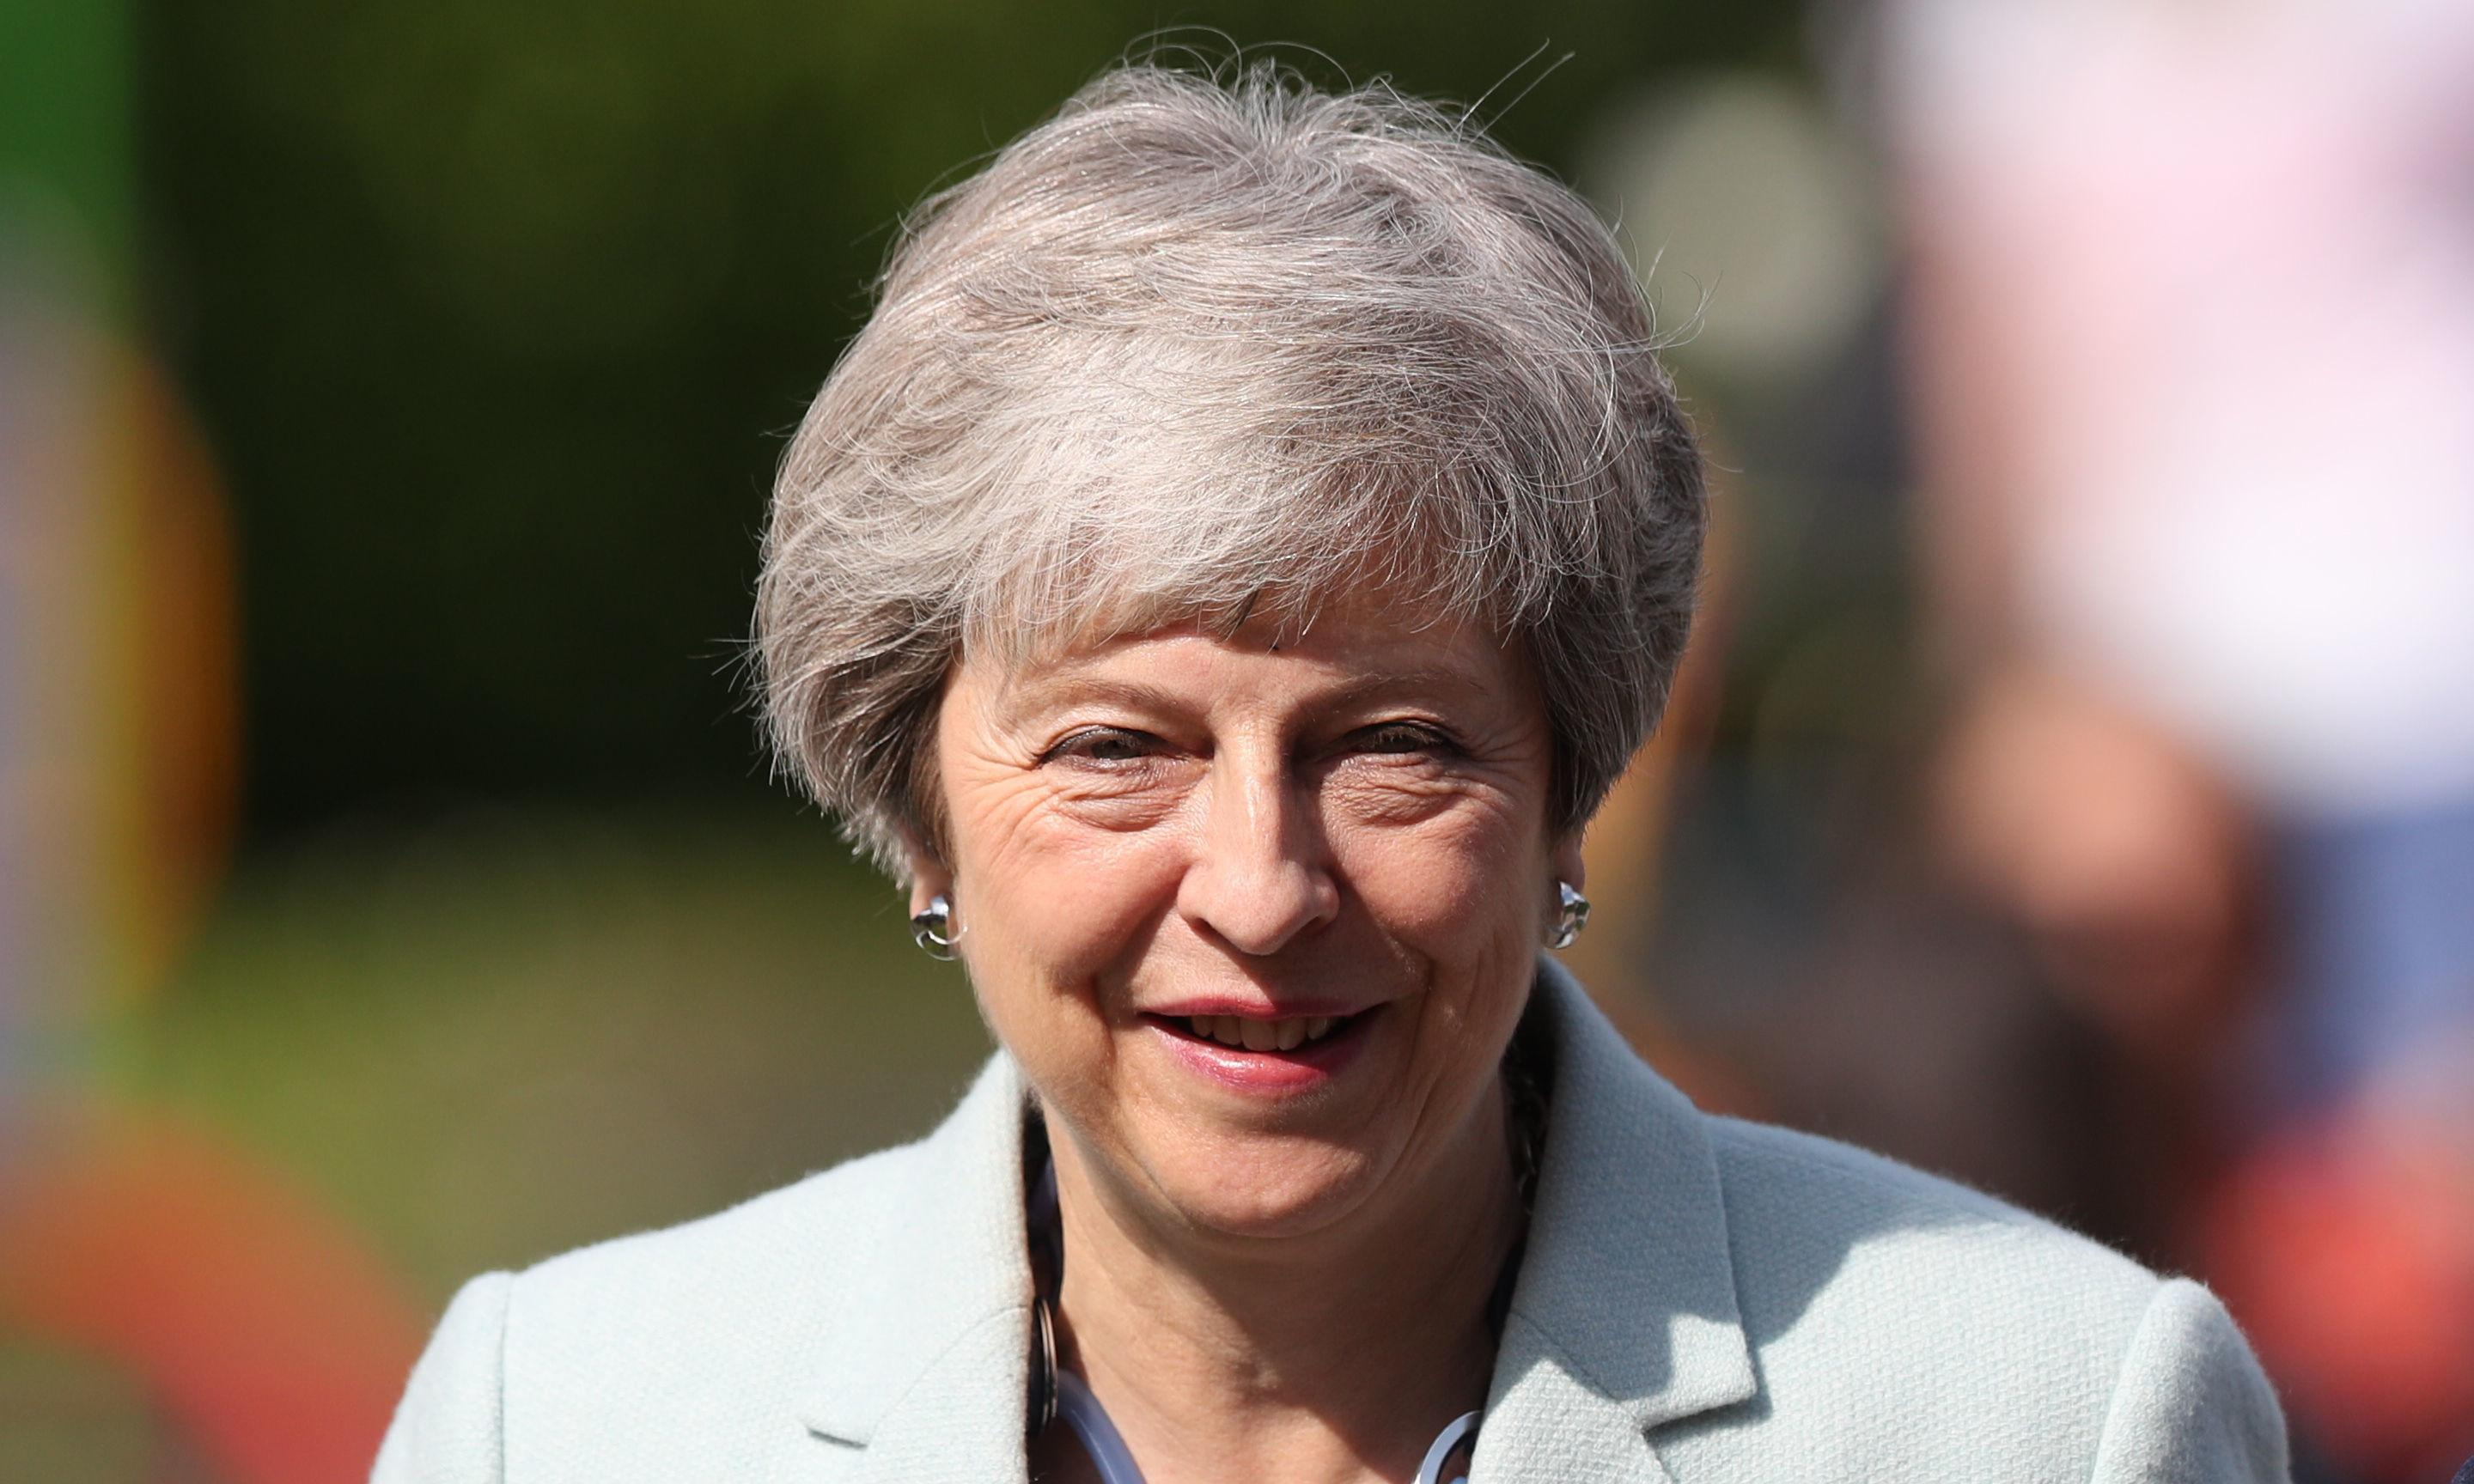 Friday briefing: Is this May's Brexit exit?